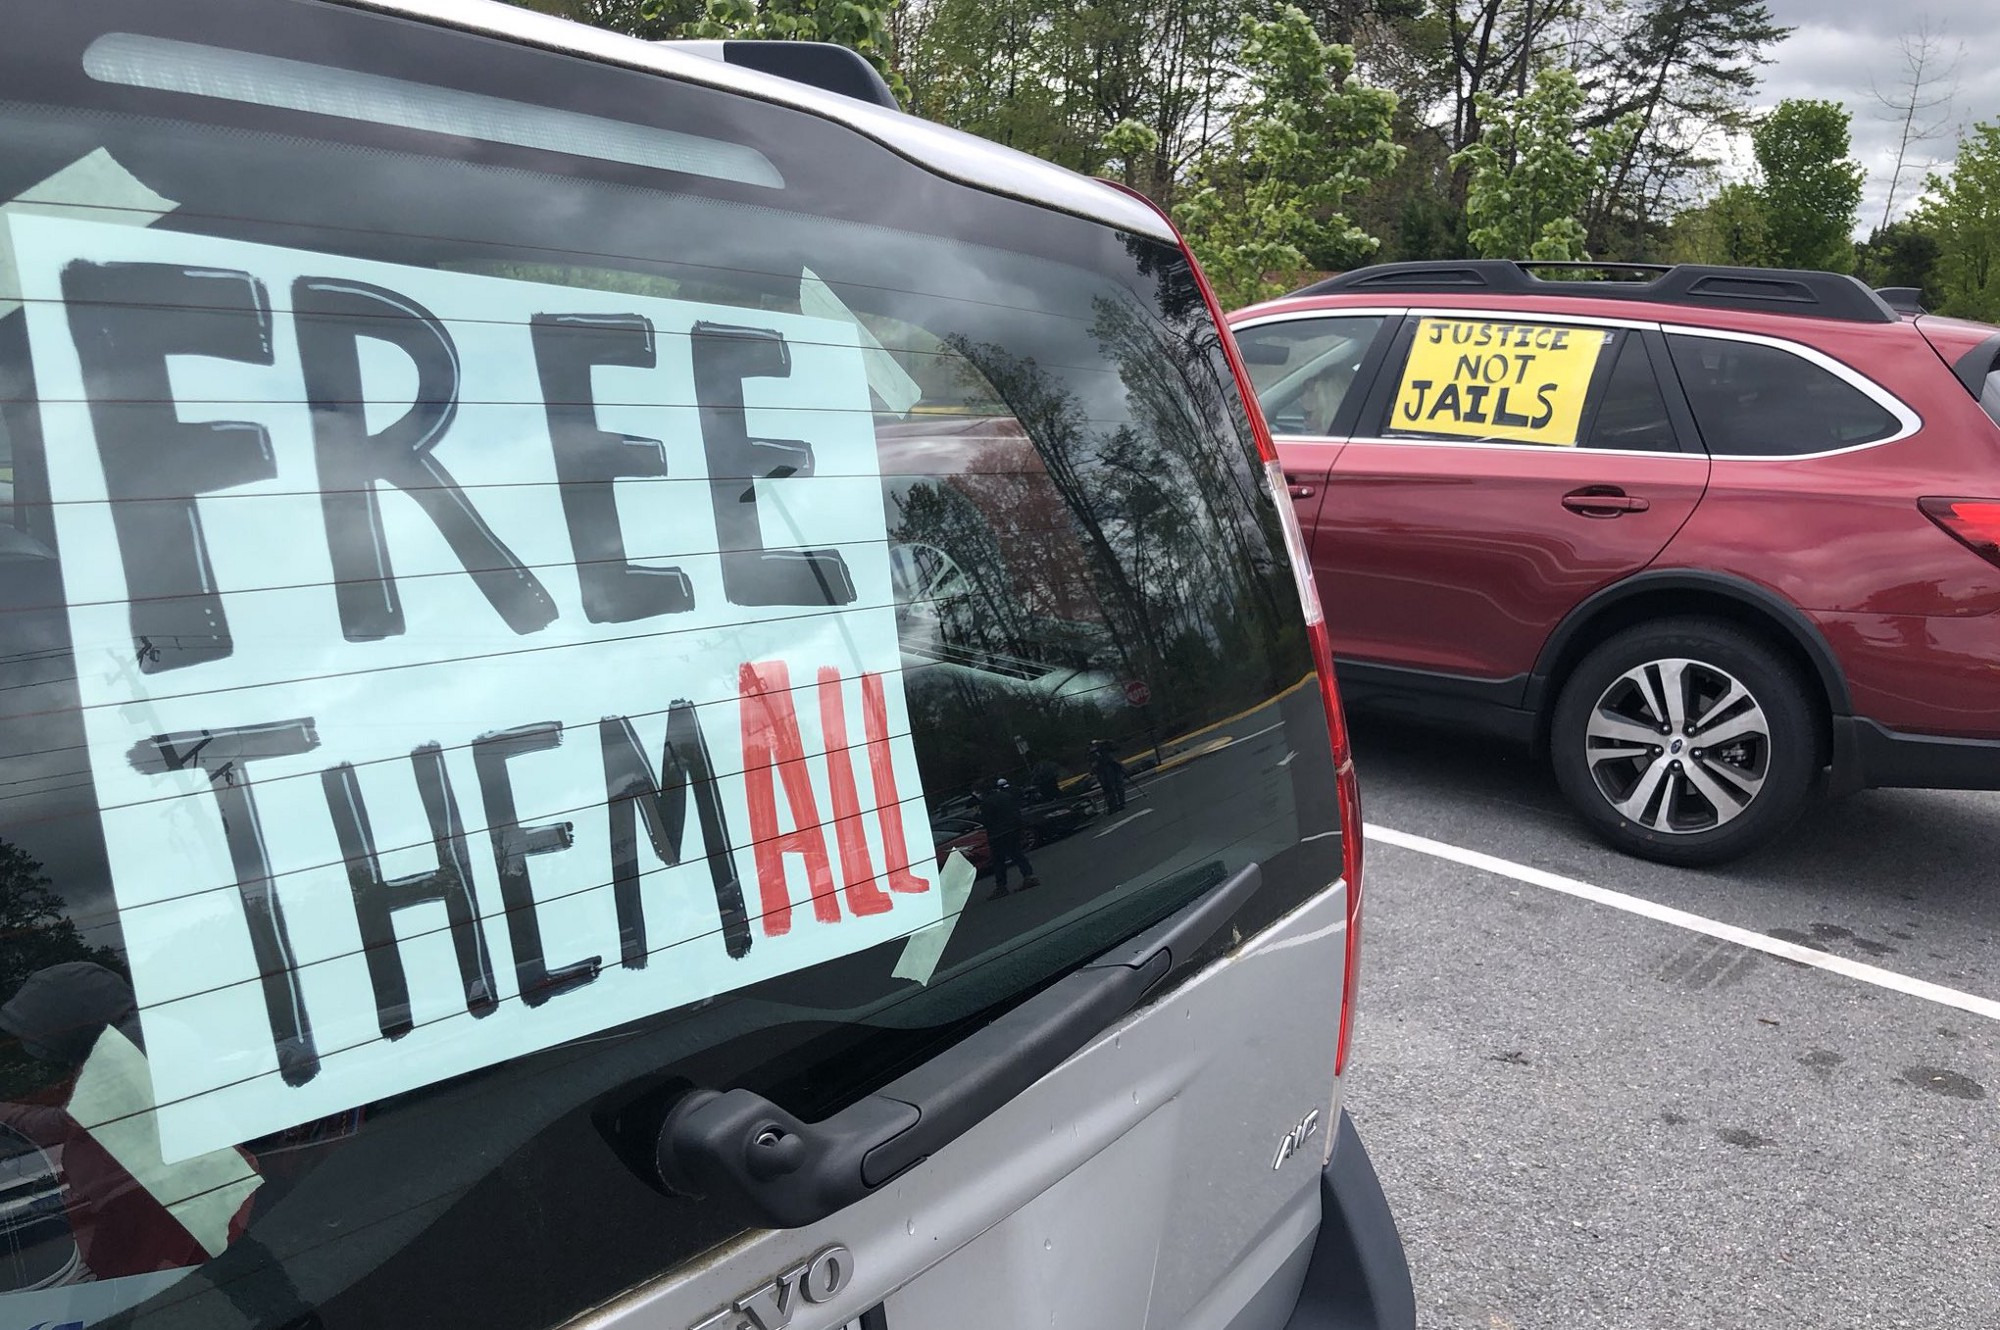 Two cars with signs. One says free them all and the other says justice not jails